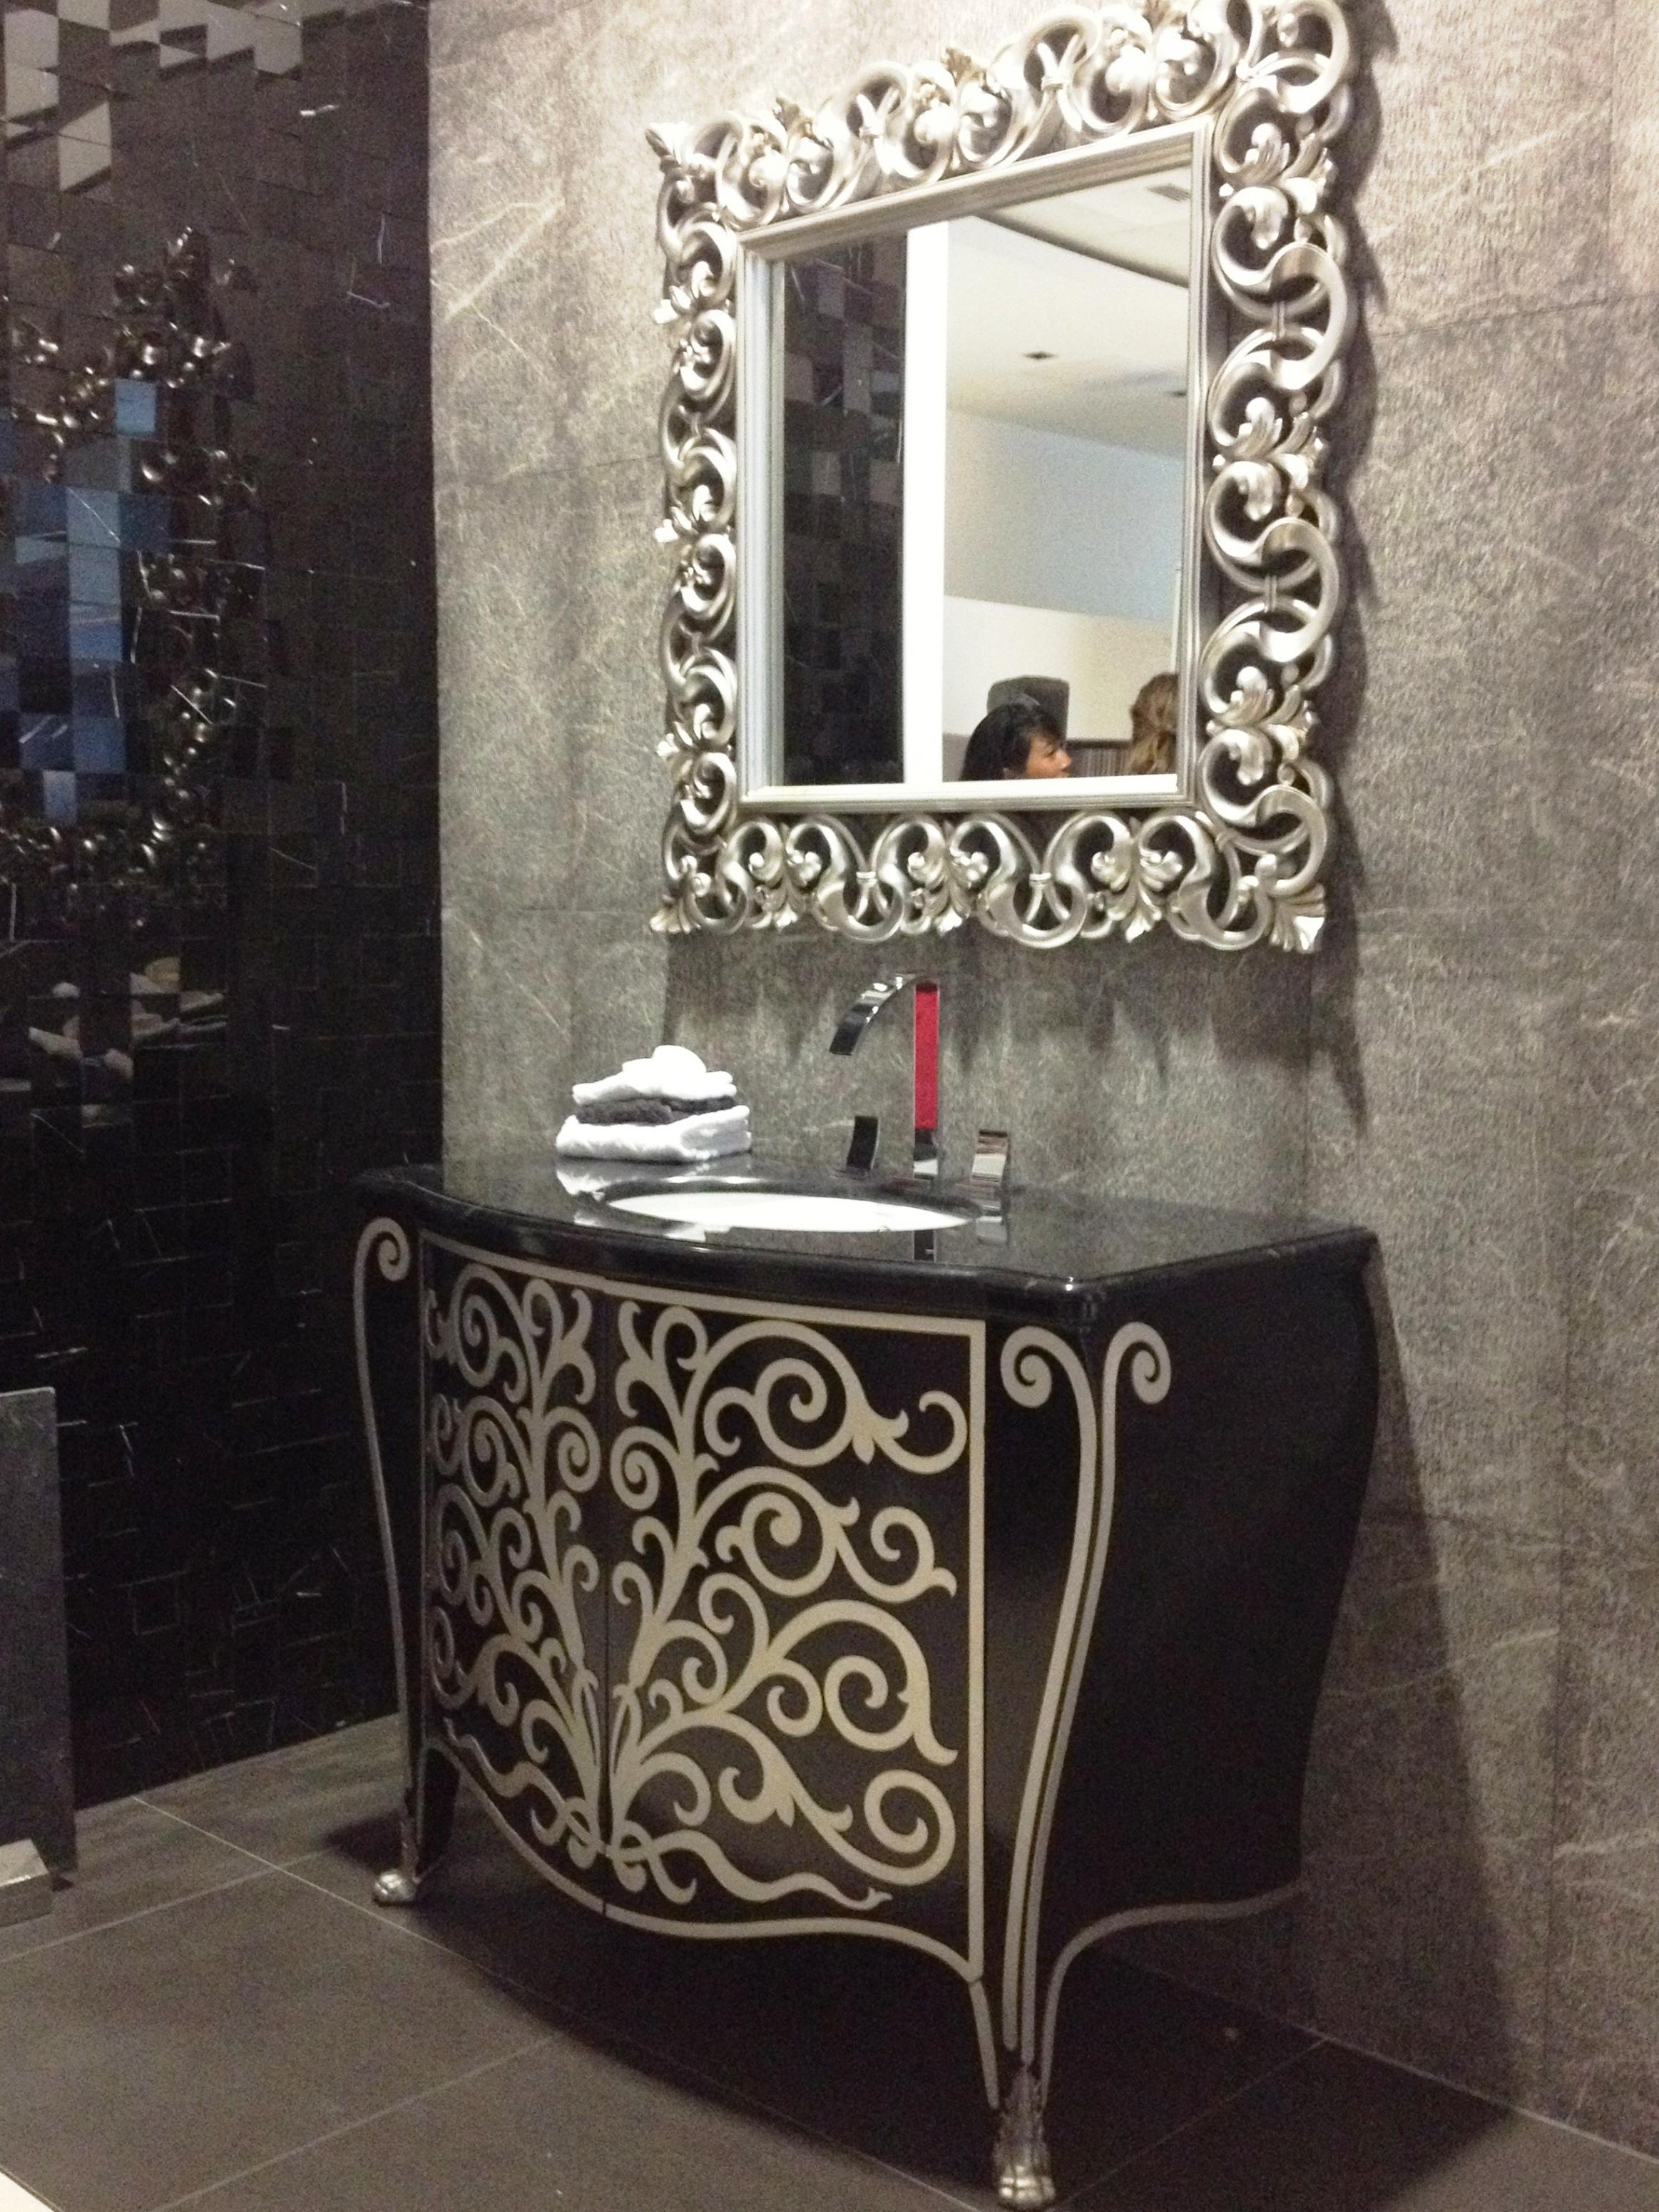 Bathroom Mirrors Wrought Iron | Home Within Wrought Iron Bathroom Mirrors (Image 5 of 20)